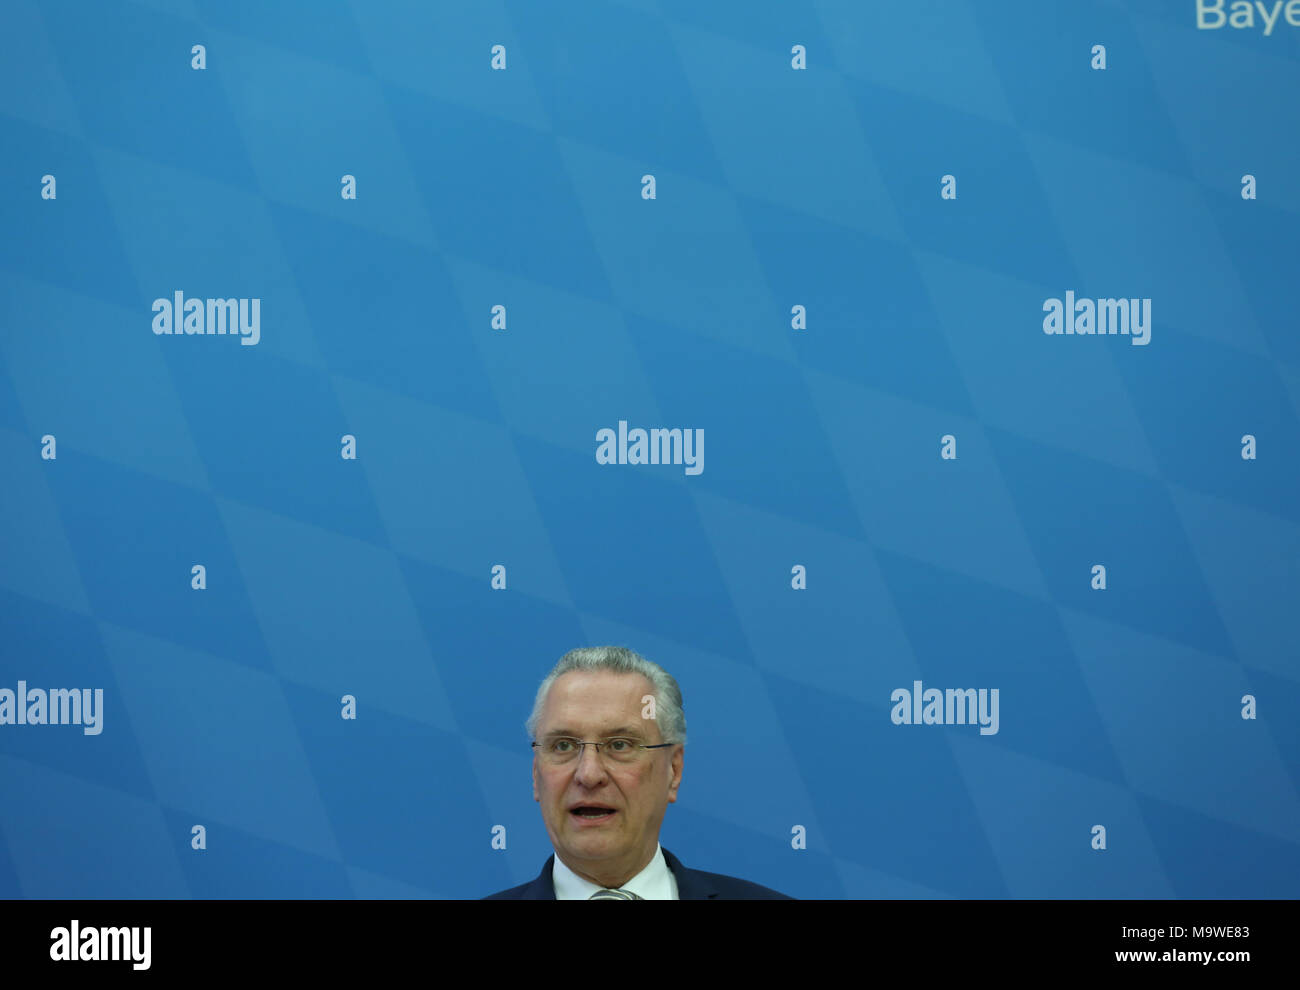 Munich, Germany. 28th Mar, 2018. Joachim Herrmann. Bavarian Minister of Interiour and Integration Joachim Herrmann of the Christian Social Union (CSU) presented the Bavarian police crime statistics of 2017. Also the president of the Bavarian police Wilhelm Schmidbauer spoke at the press conference. Credit: Alexander Pohl/Pacific Press/Alamy Live News - Stock Image